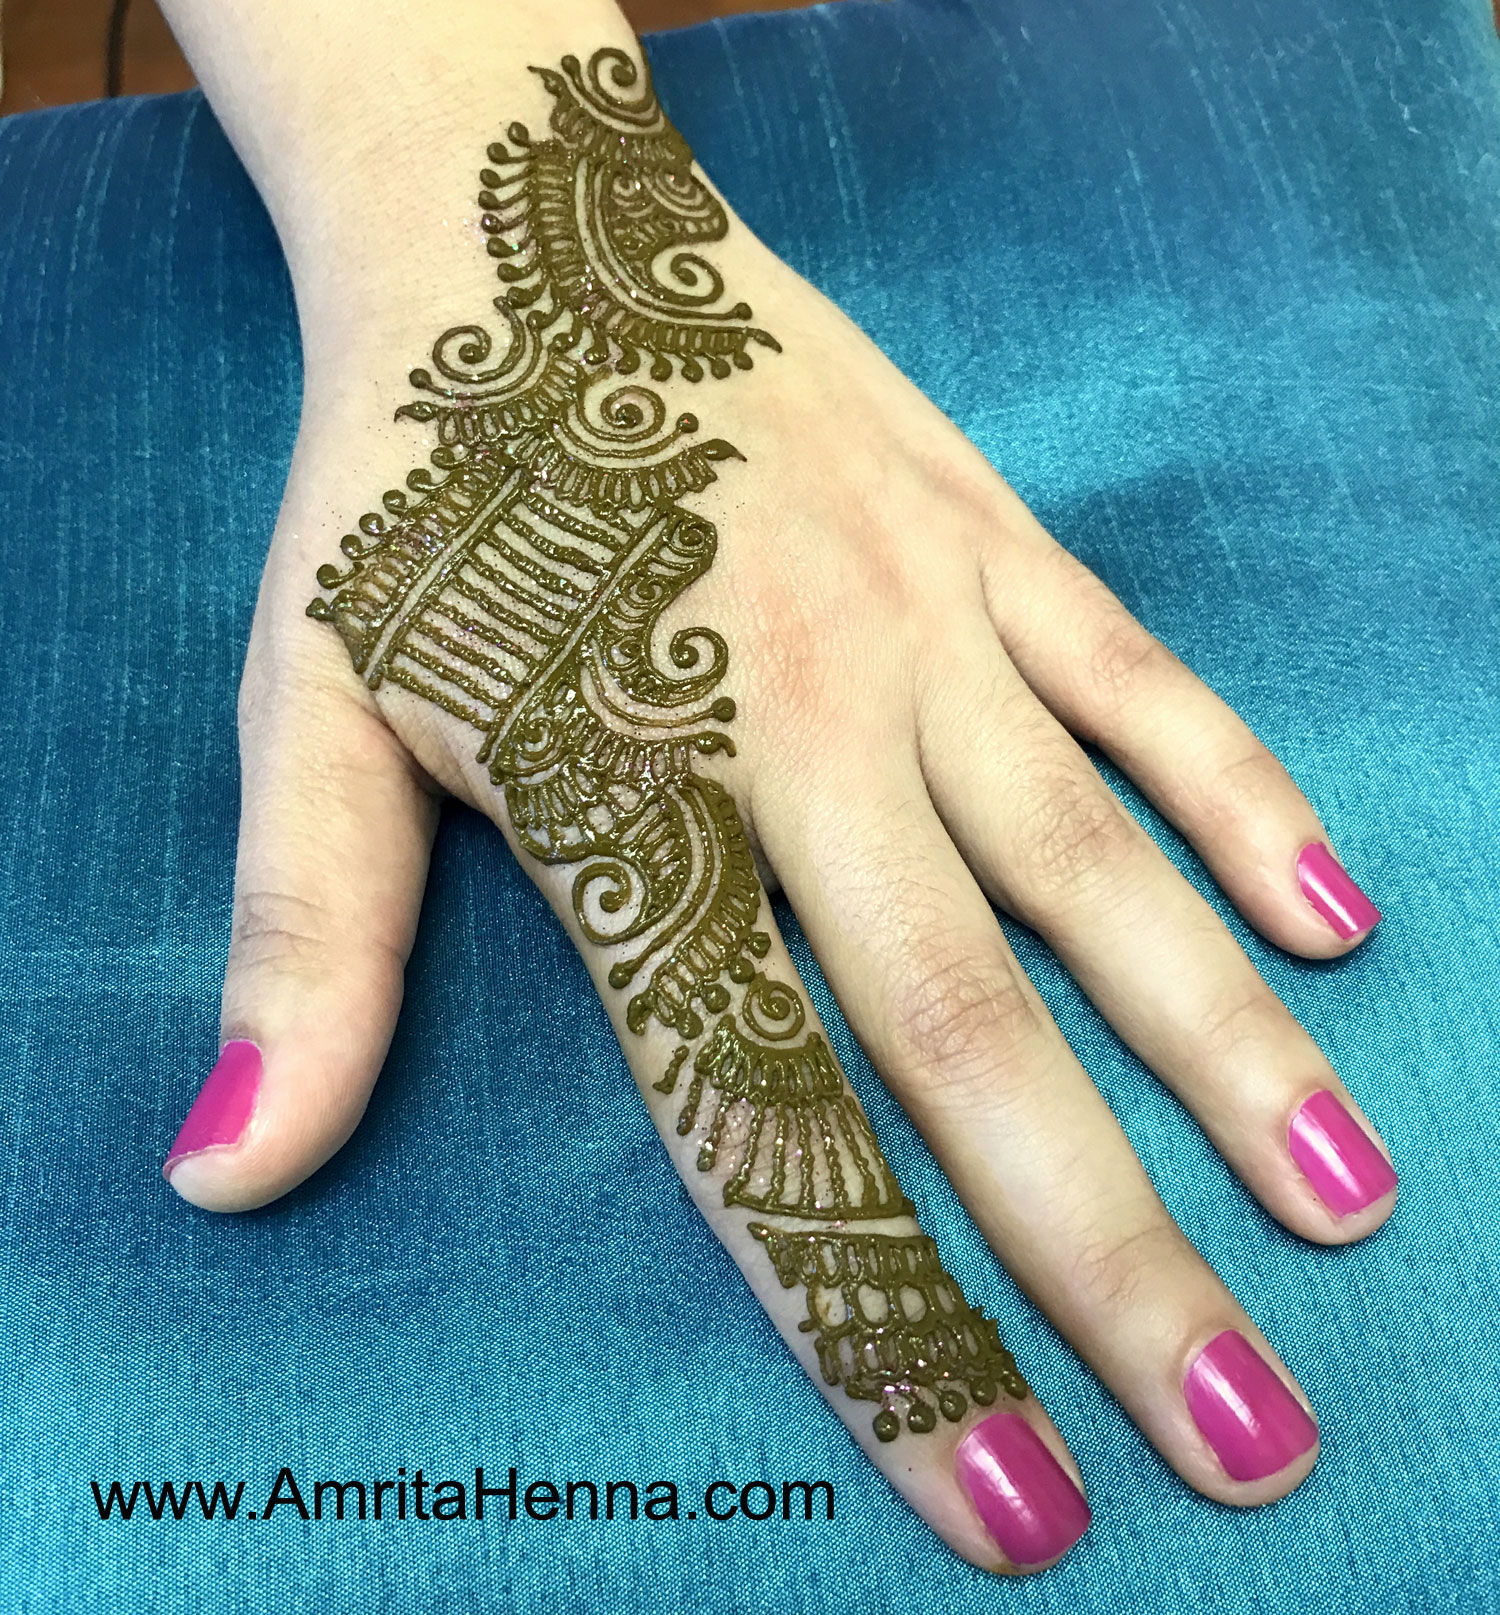 TOP 10 RAKSHA BANDHAN HENNA DESIGNS - 10 BEST MEHNDI DESIGNS FOR INDIAN RAKHI FESTIVAL - 10 STUNNING MEHENDI DESIGNS FOR THIS RAKSHA BANDHAN - 10 MUST TRY MEHANDI DESIGNS FOR RAKHI - TRADITIONAL INDIAN HENNA DESIGNS FOR RAKSHA BANDHAN - 10 LATEST BEAUTIFUL RAKHI HENNA DESIGNS - INDIAN MEHENDI ART HENNA TATTOO - 10 TRADITIONAL RAJASTHANI MEHDNI DESIGNS FOR THIS RAKSHA BANDHAN FESTIVAL - FESTIVAL OF RAKHI - INDIAN FESTIVALS - TRADITIONAL MEHNDI DESIGNS - INDIAN WEDDING BRIDAL HENNA PHOTOS - INDIAN WEDDING HENNA SANGEET CEREMONY DESIGN IDEAS